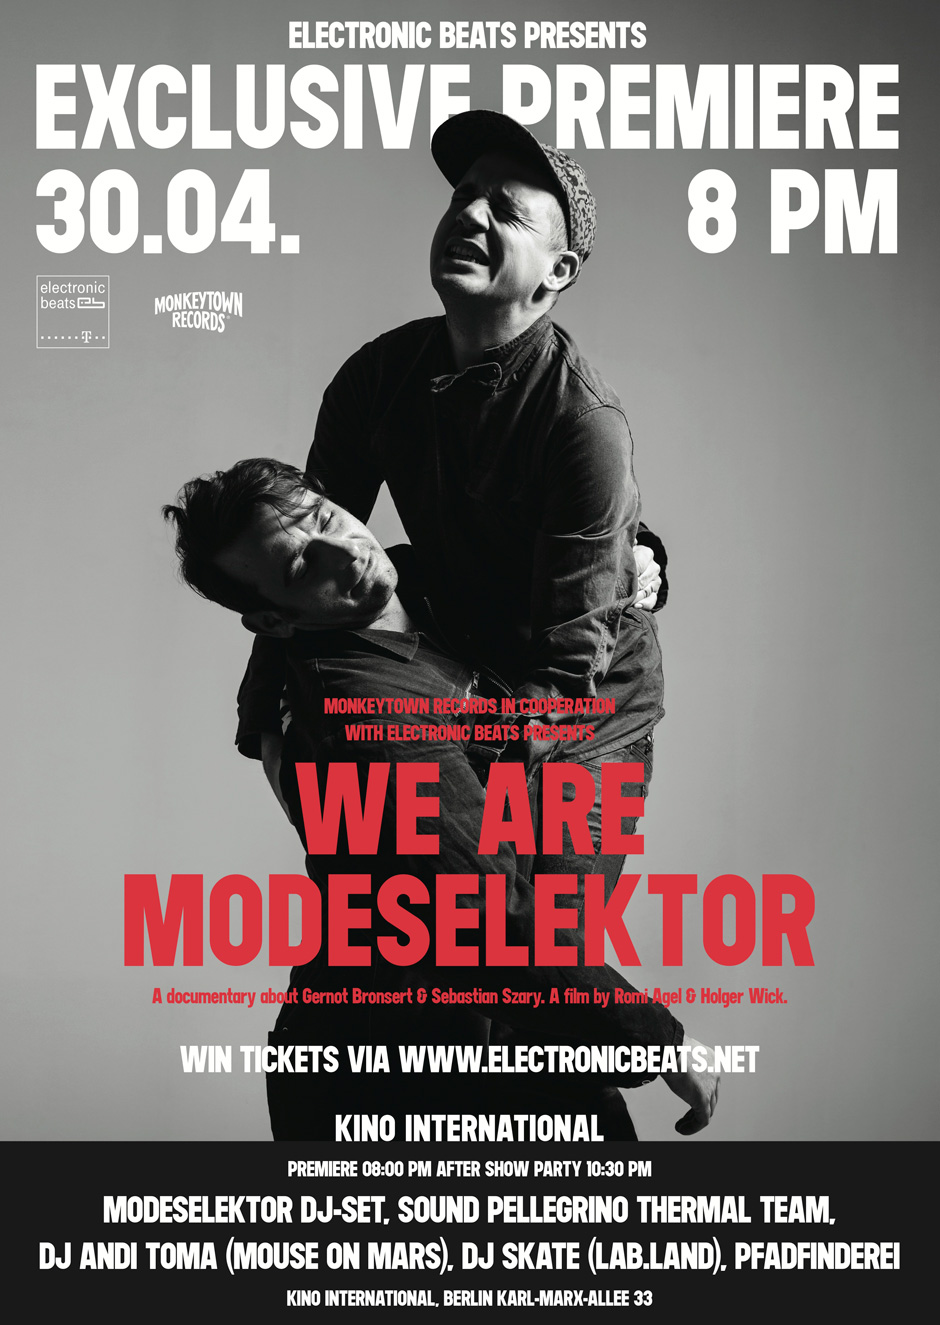 We_Are_Modeselektor_Premiere_Electronic_Beats